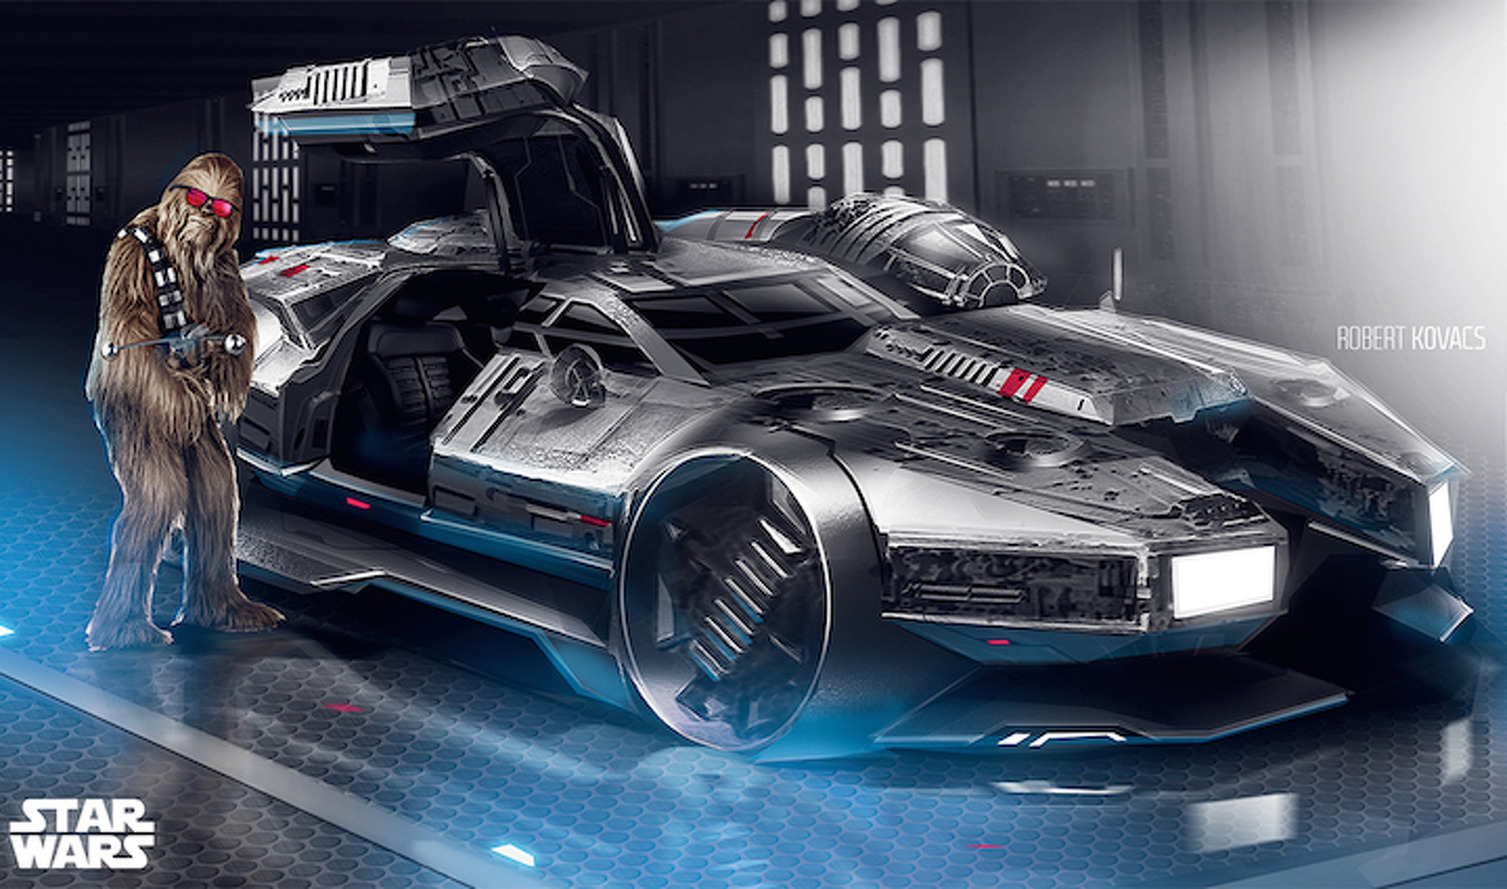 This Millennium Falcon Sports Car is What Chewbacca Drives on the Weekend